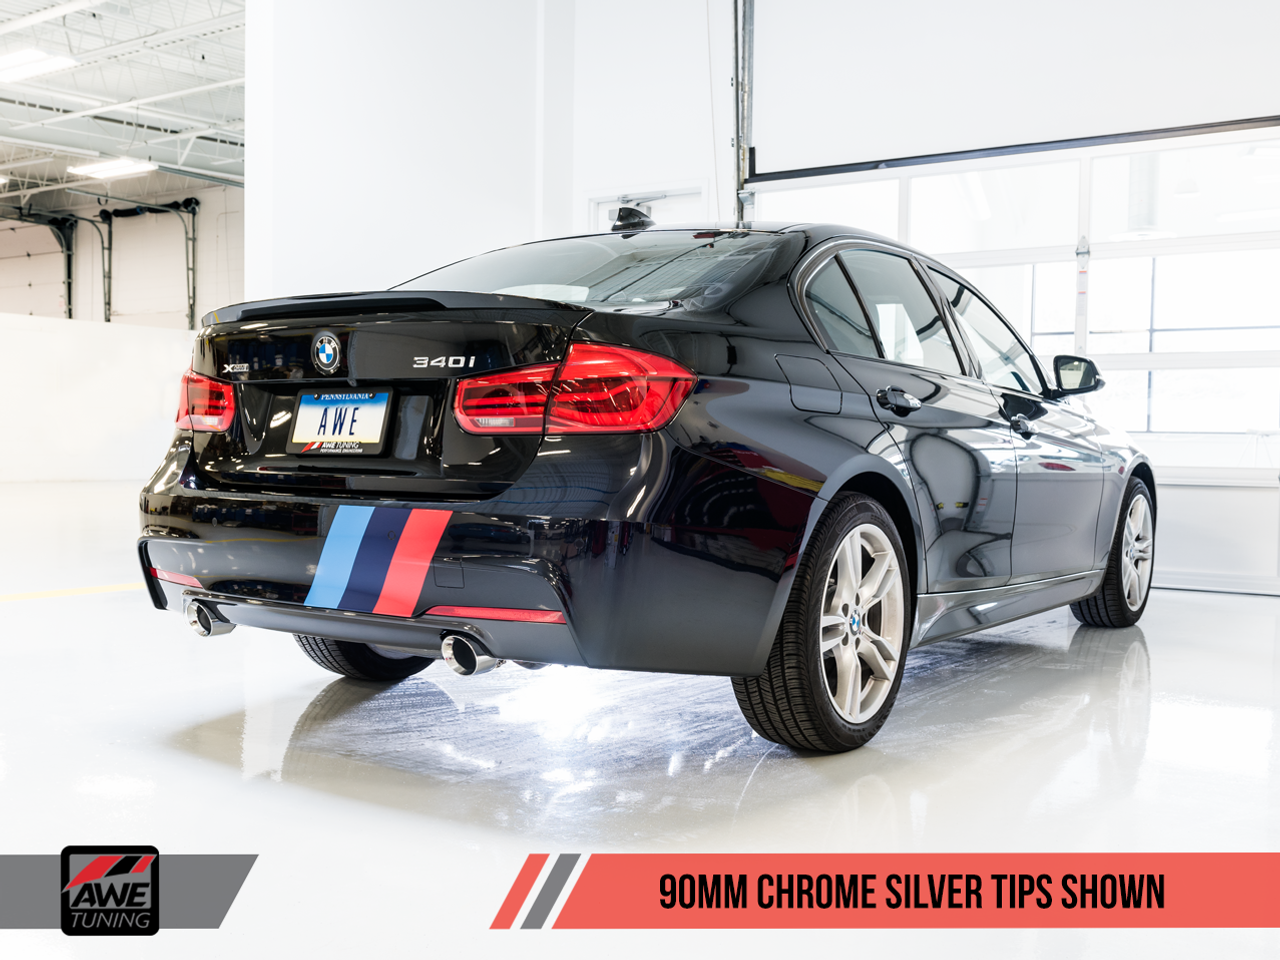 AWE Tuning BMW F3x 340i and 440i Touring Edition Axle-Back Exhaust - 90mm Chrome Silver Tailpipes